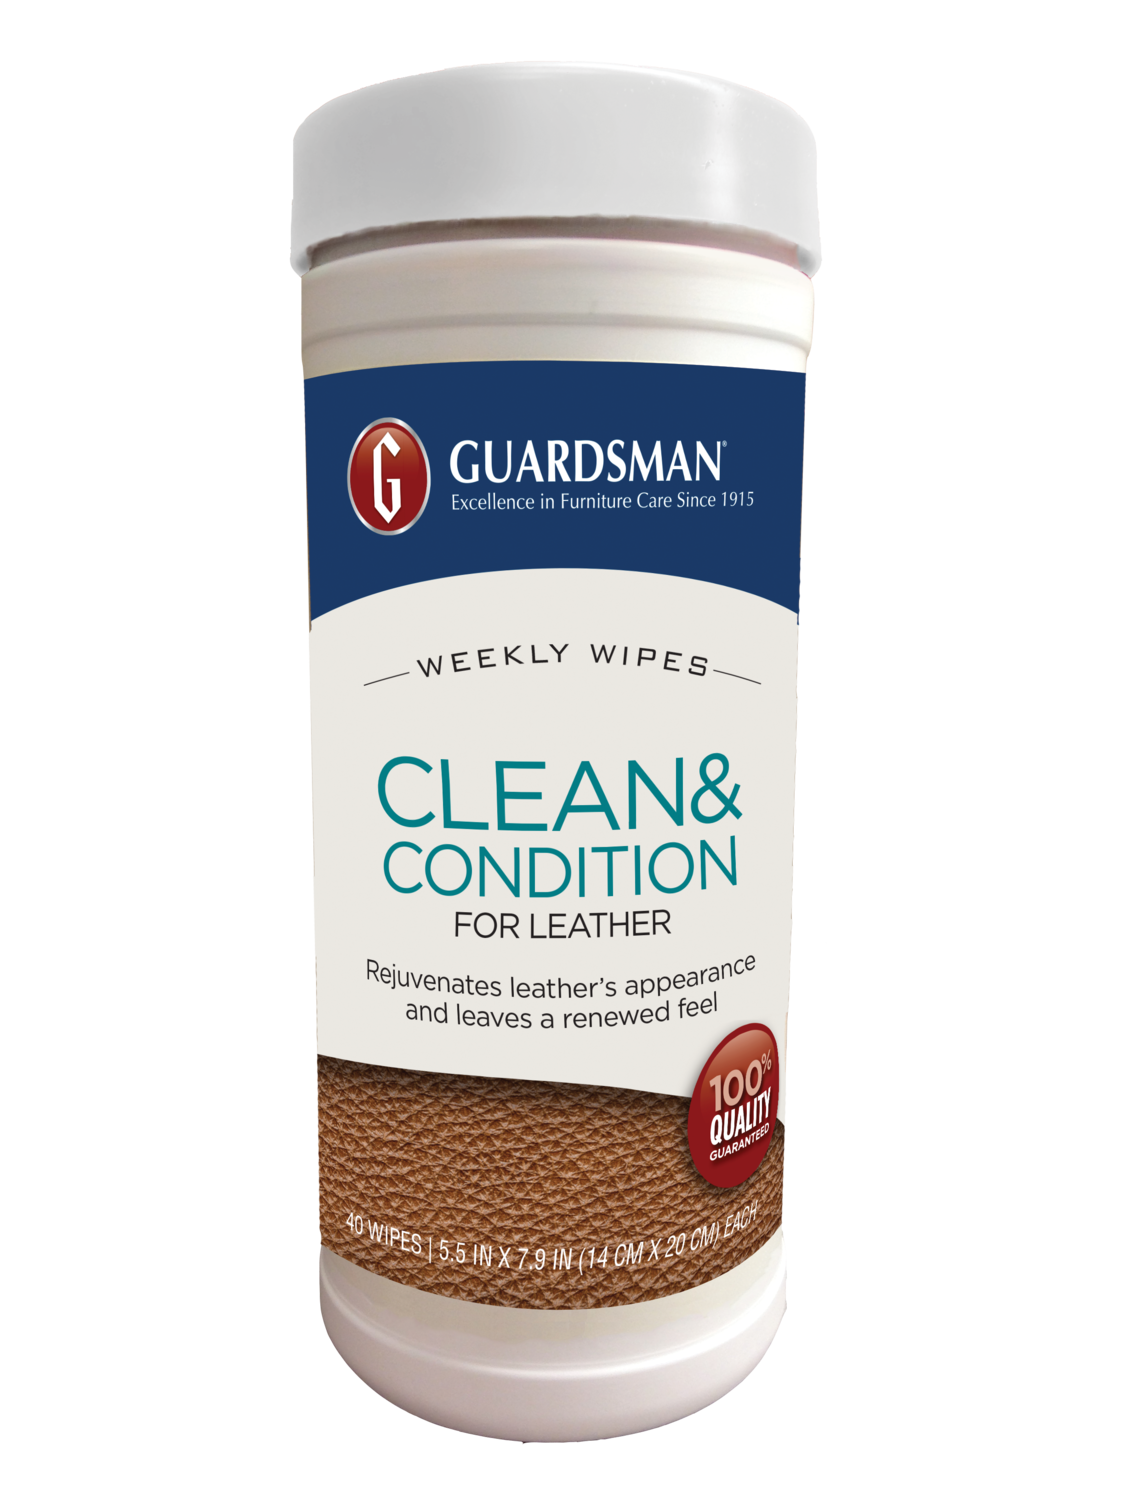 Guardsman Leather Clean & Condition Weekly Wipes